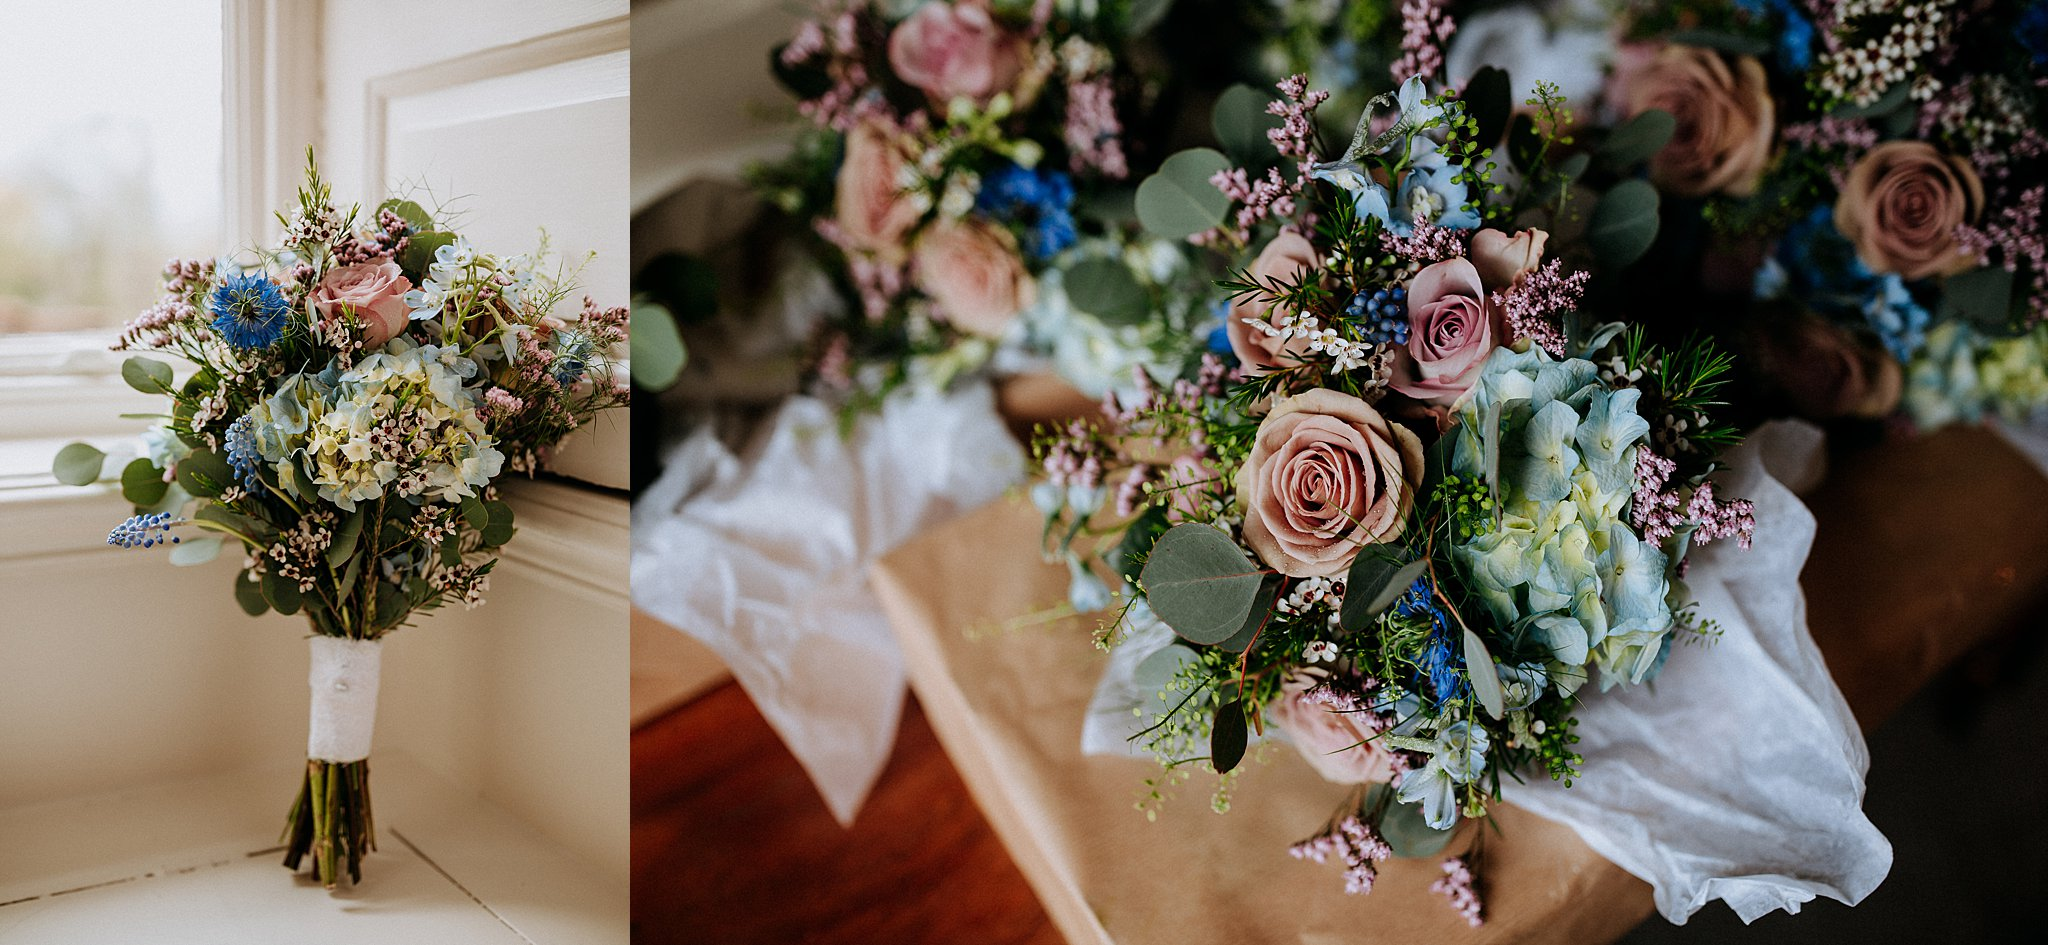 Relaxed Wedding Photographers - North East